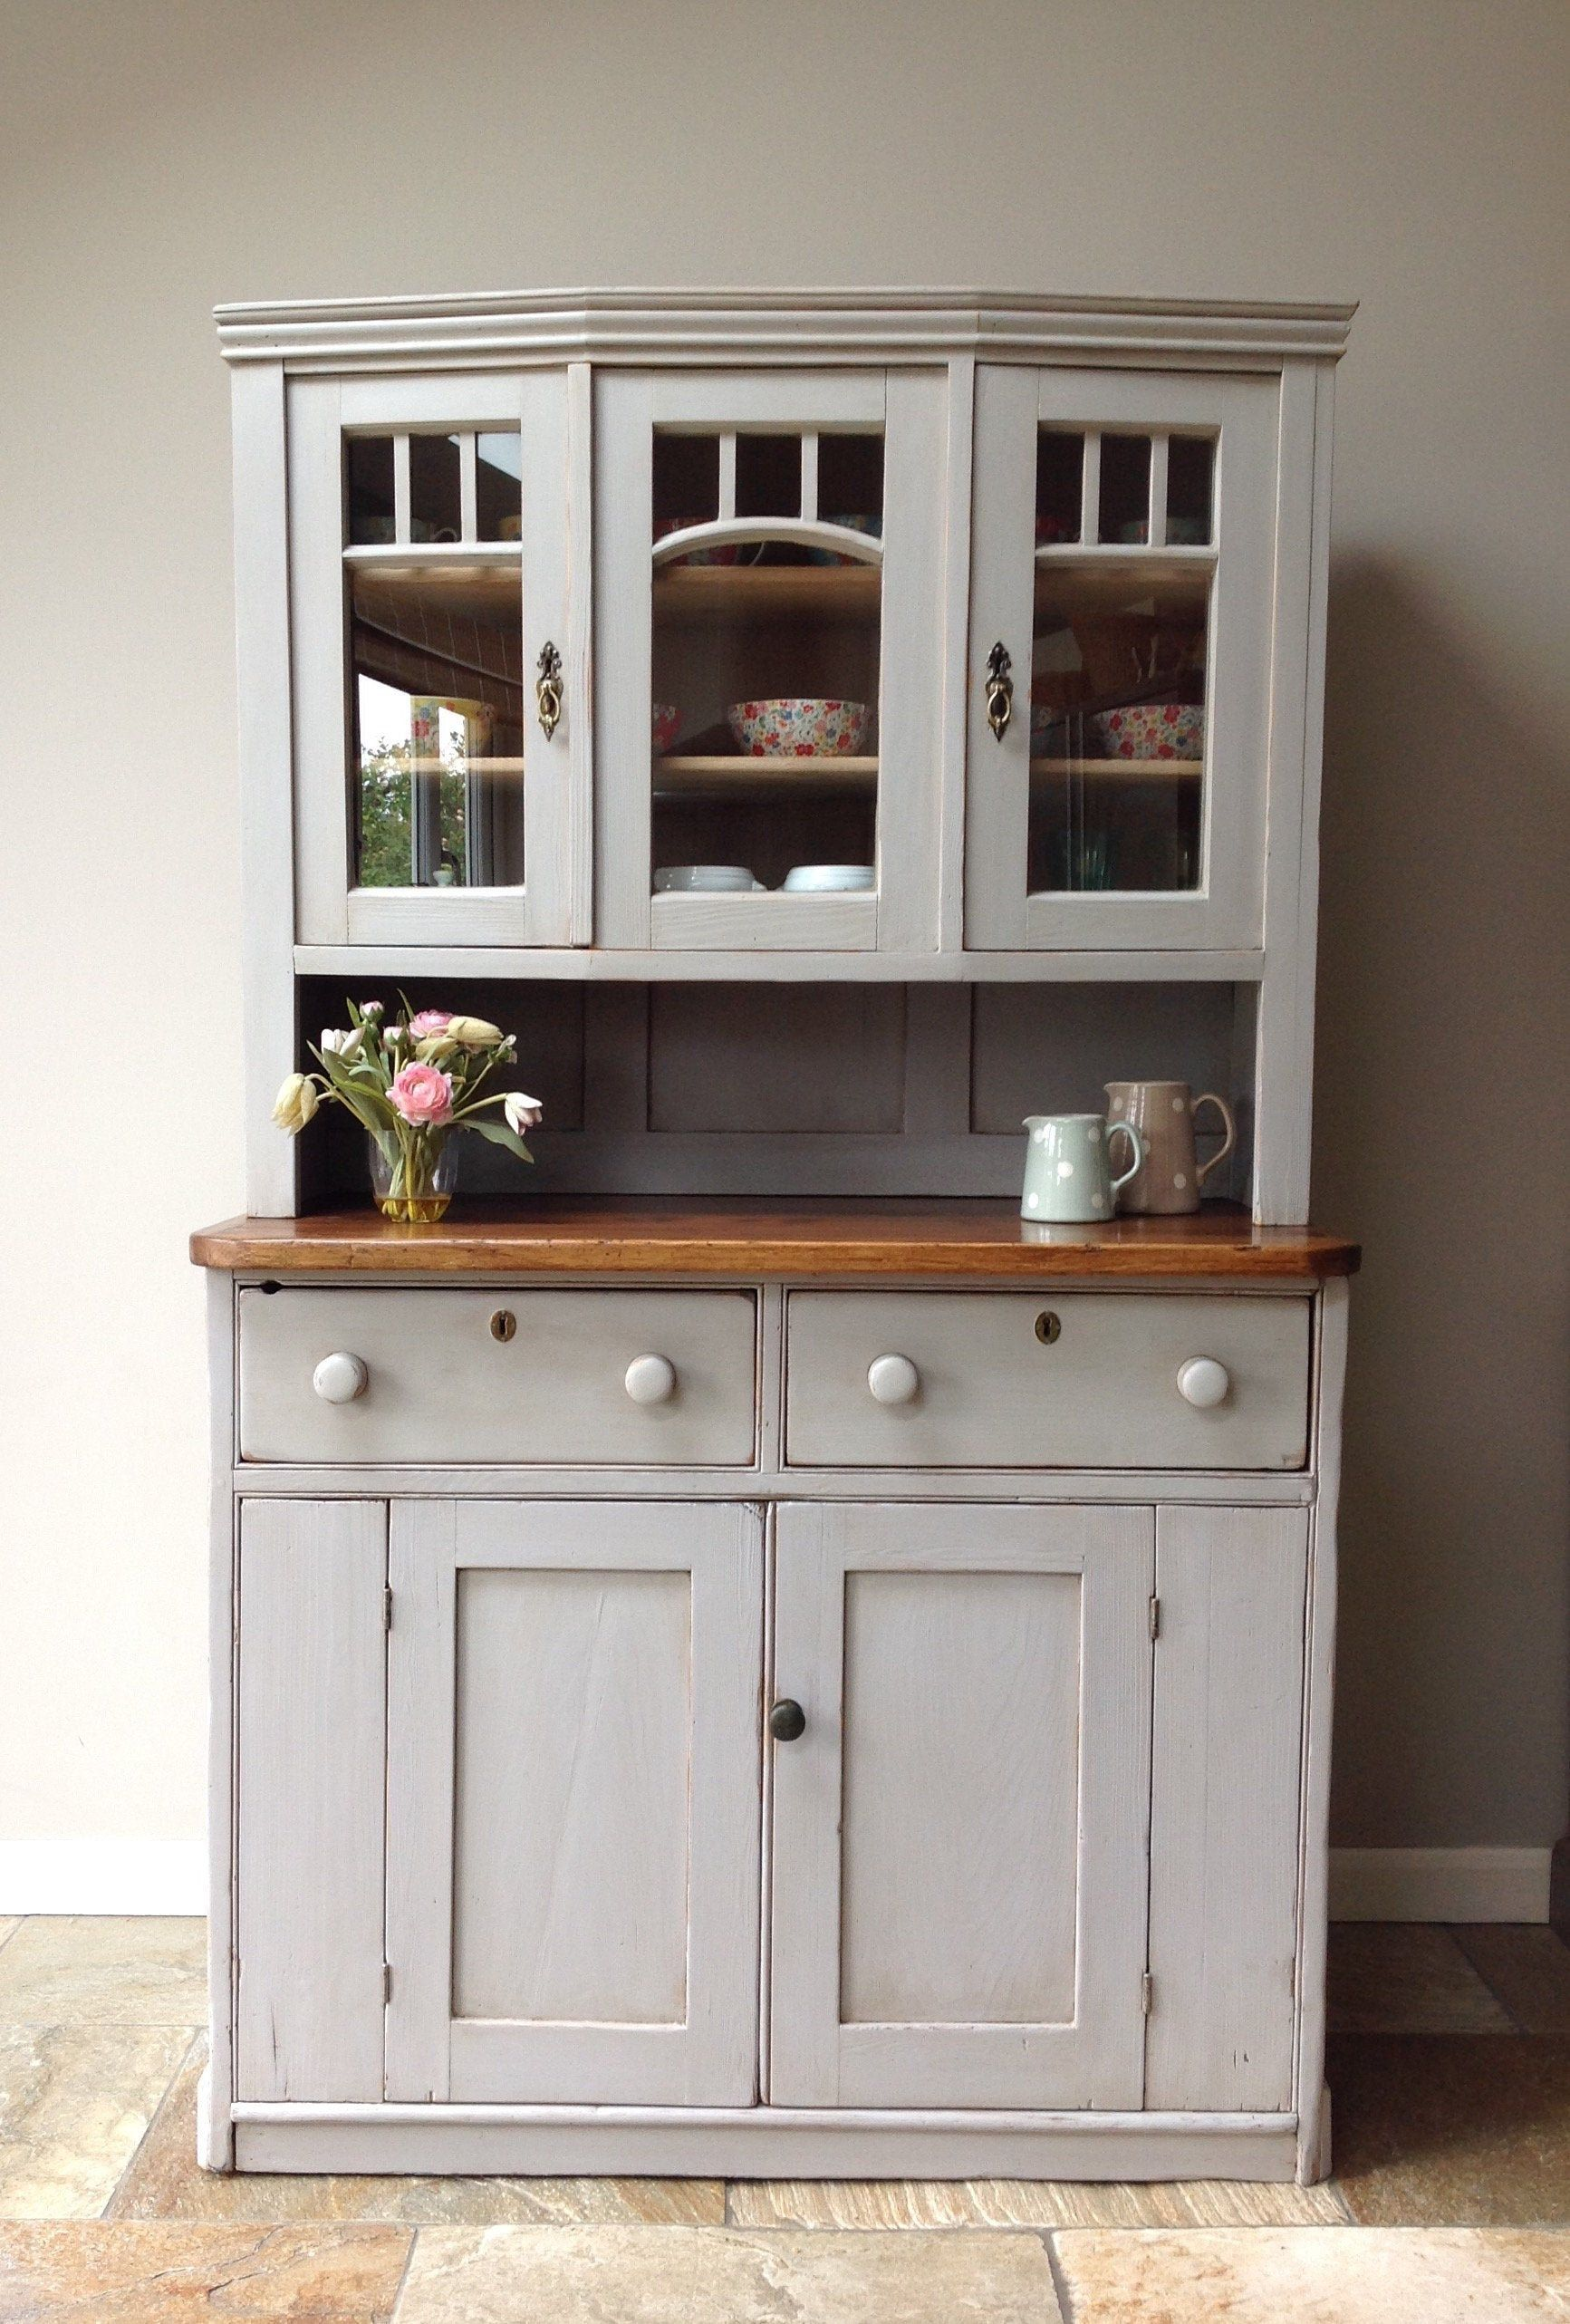 Antique Continental Gustavian Victorian Painted Pine Grey Etsy In 2020 Kitchen Units Kitchen Dresser Kitchen Cupboards